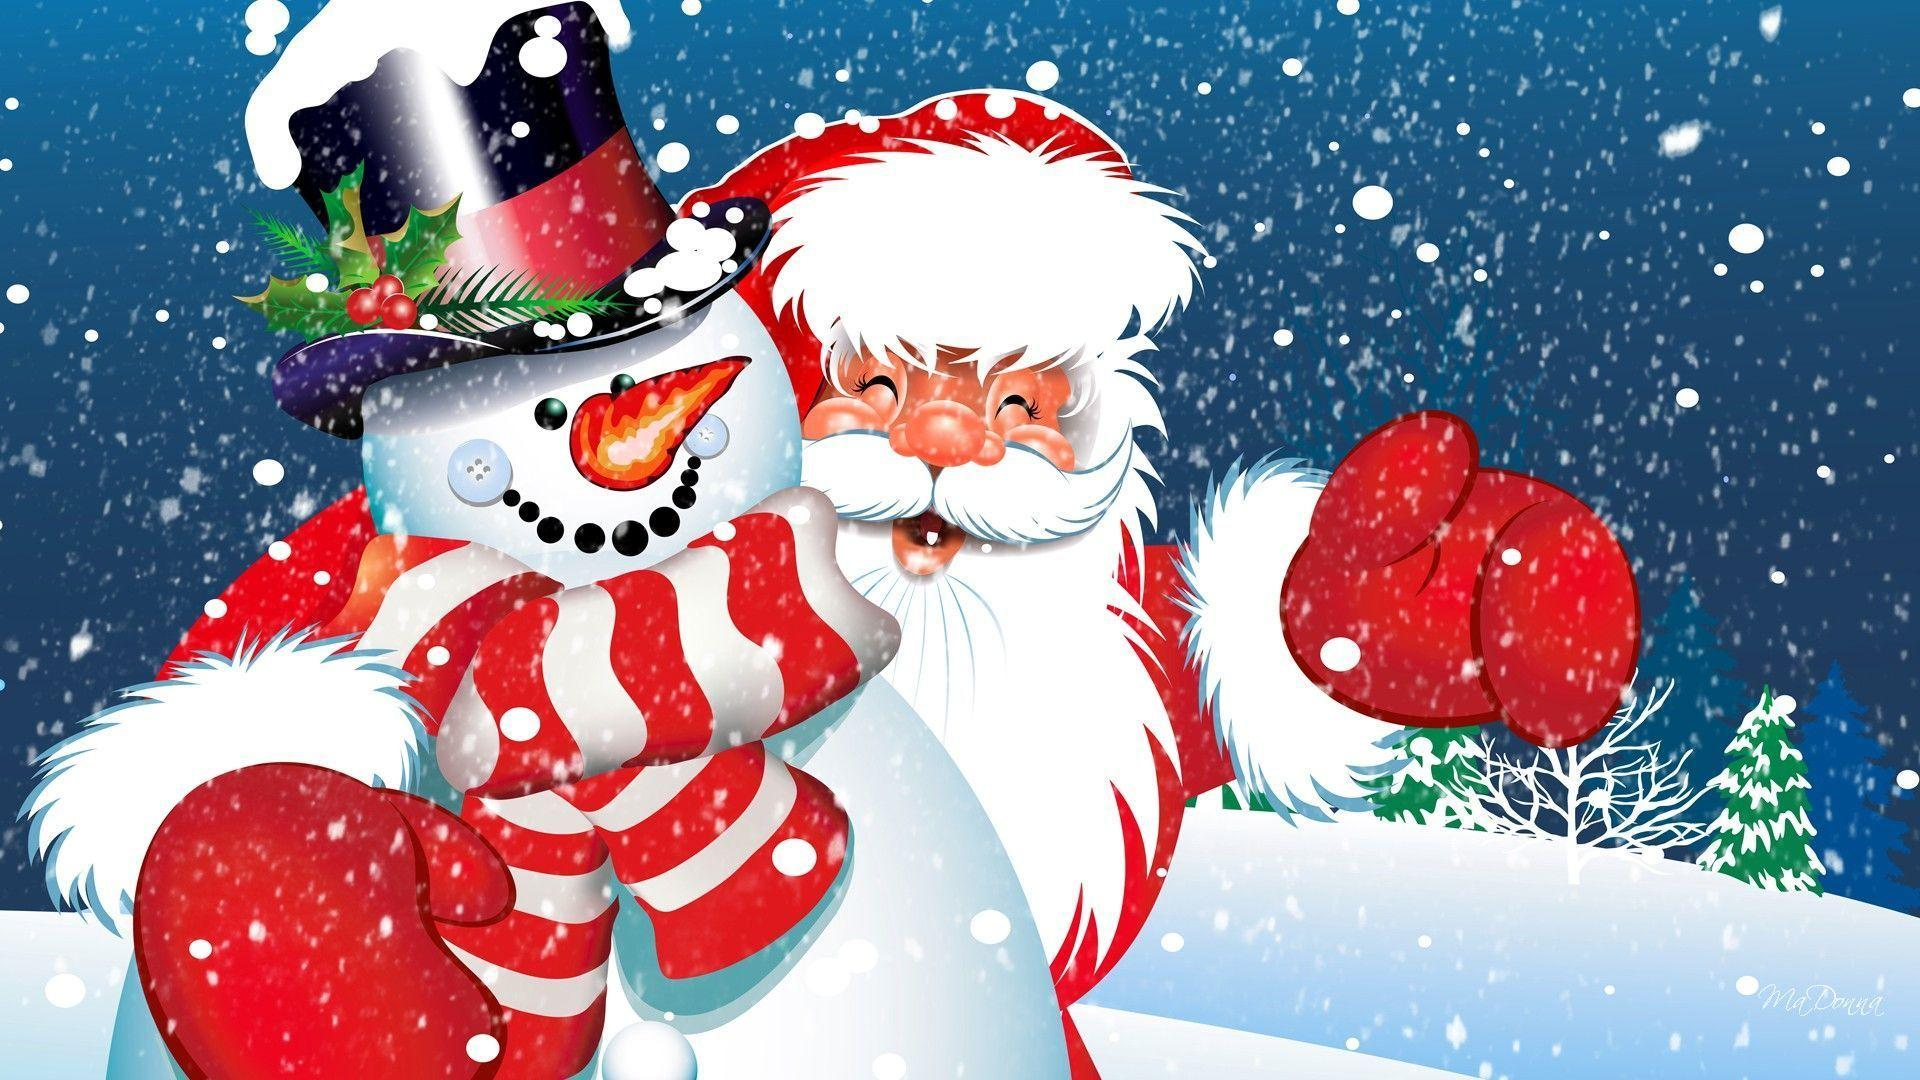 tag snowman desktop wallpapers - photo #17